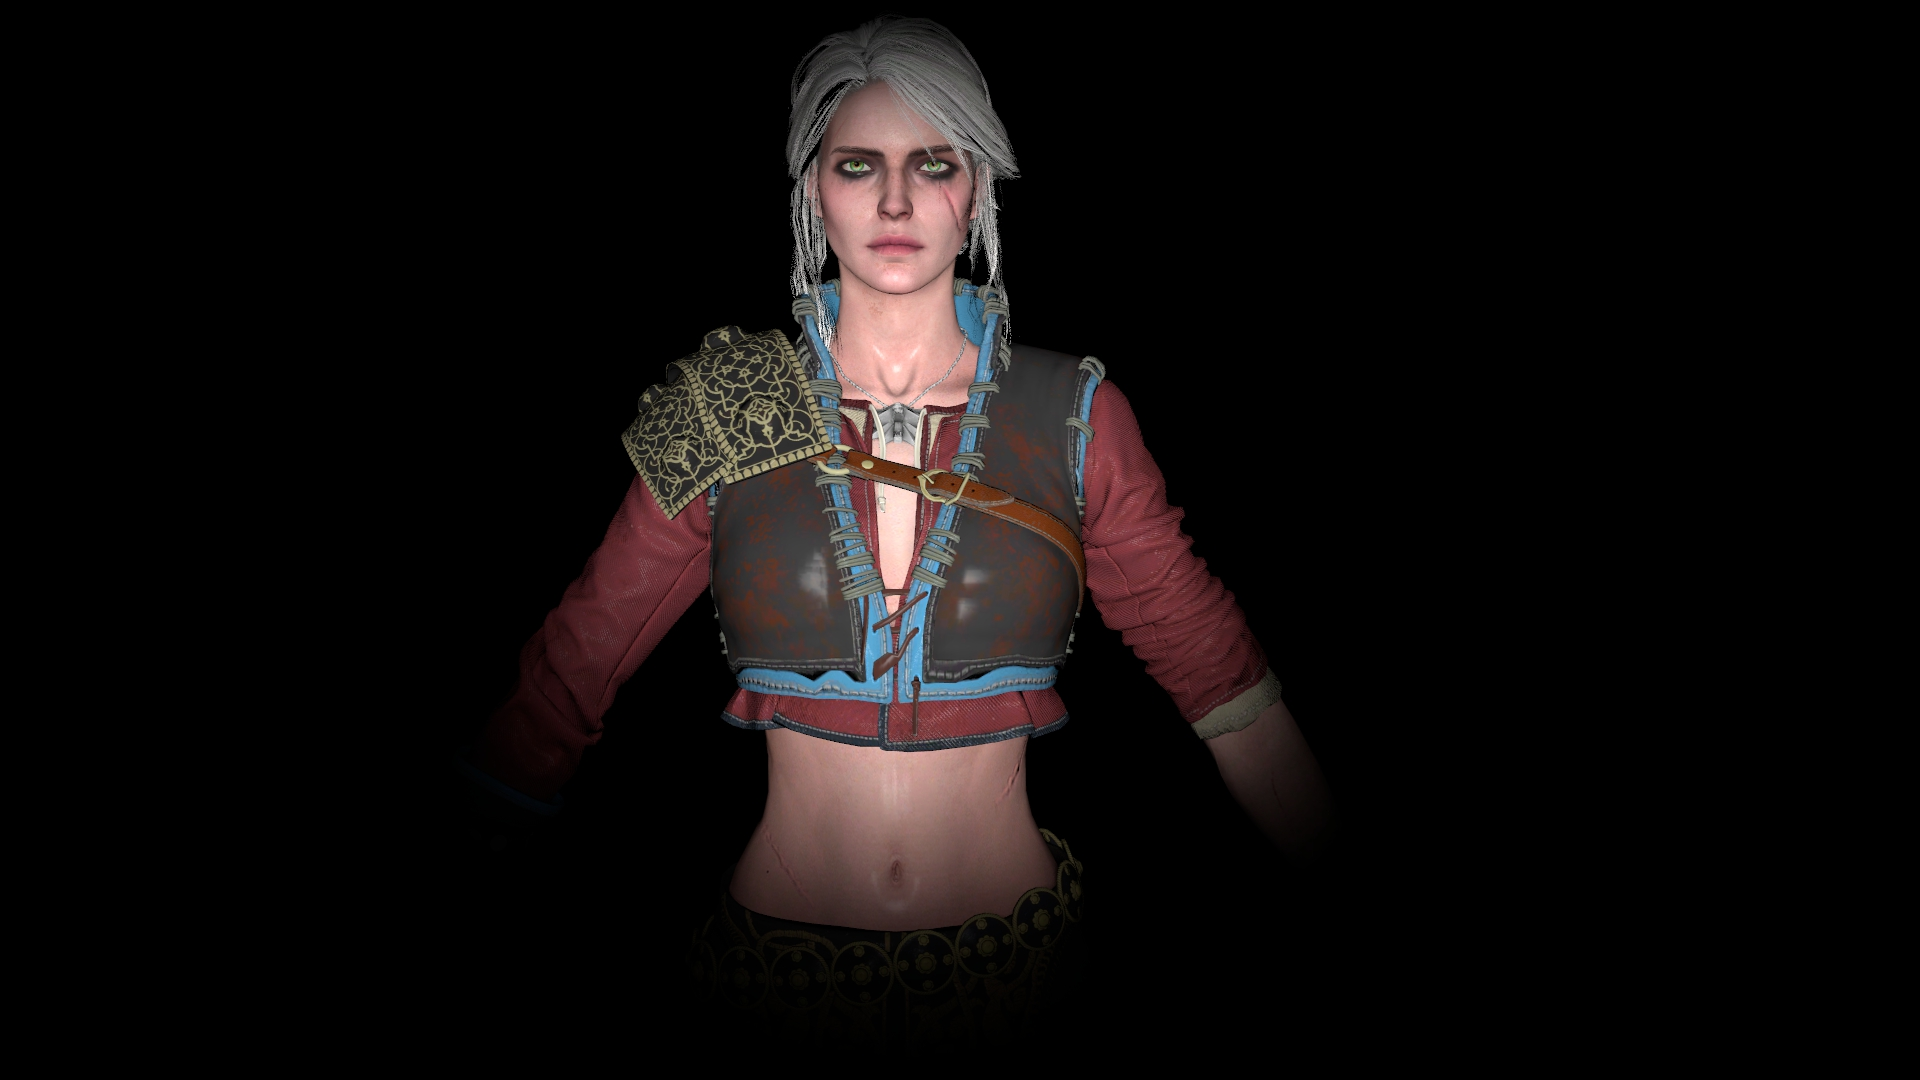 Steam Workshop :: Witcher 3 - Ciri Alternative Look (PM+NPC)